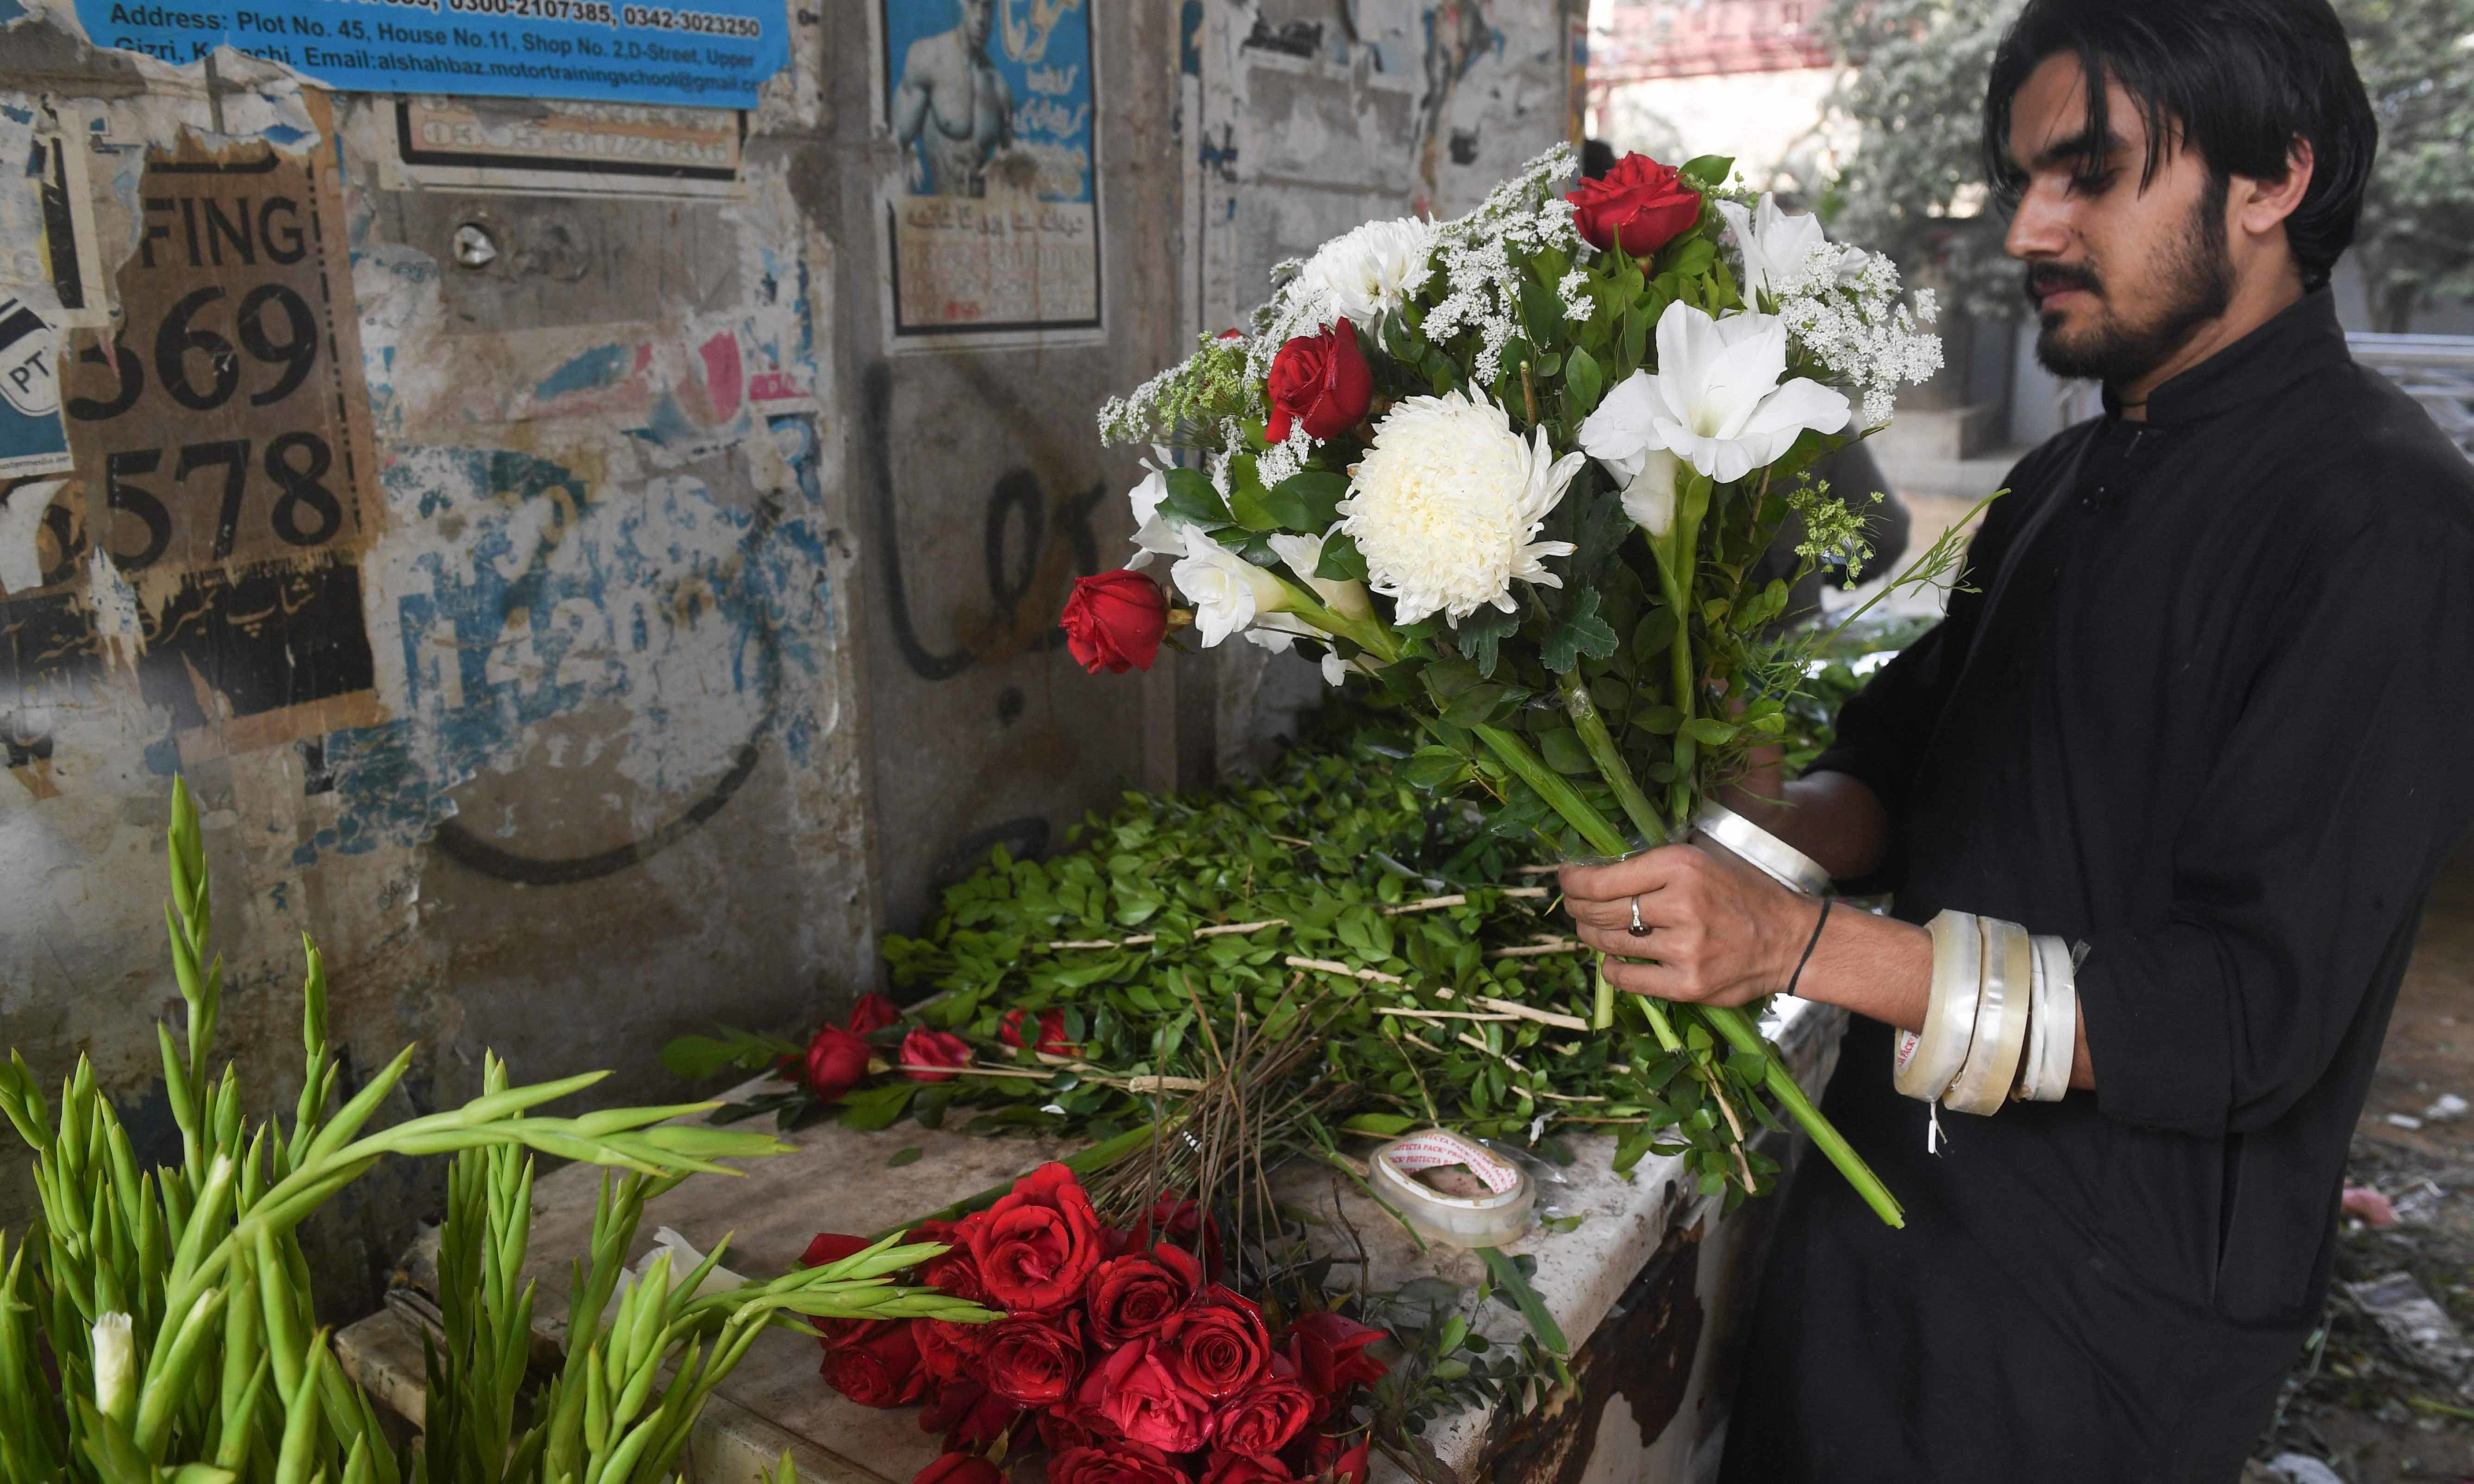 A vendor prepares a flower bouquet at a roadside stall ahead of Valentine's Day in Karachi on February 13. — AFP